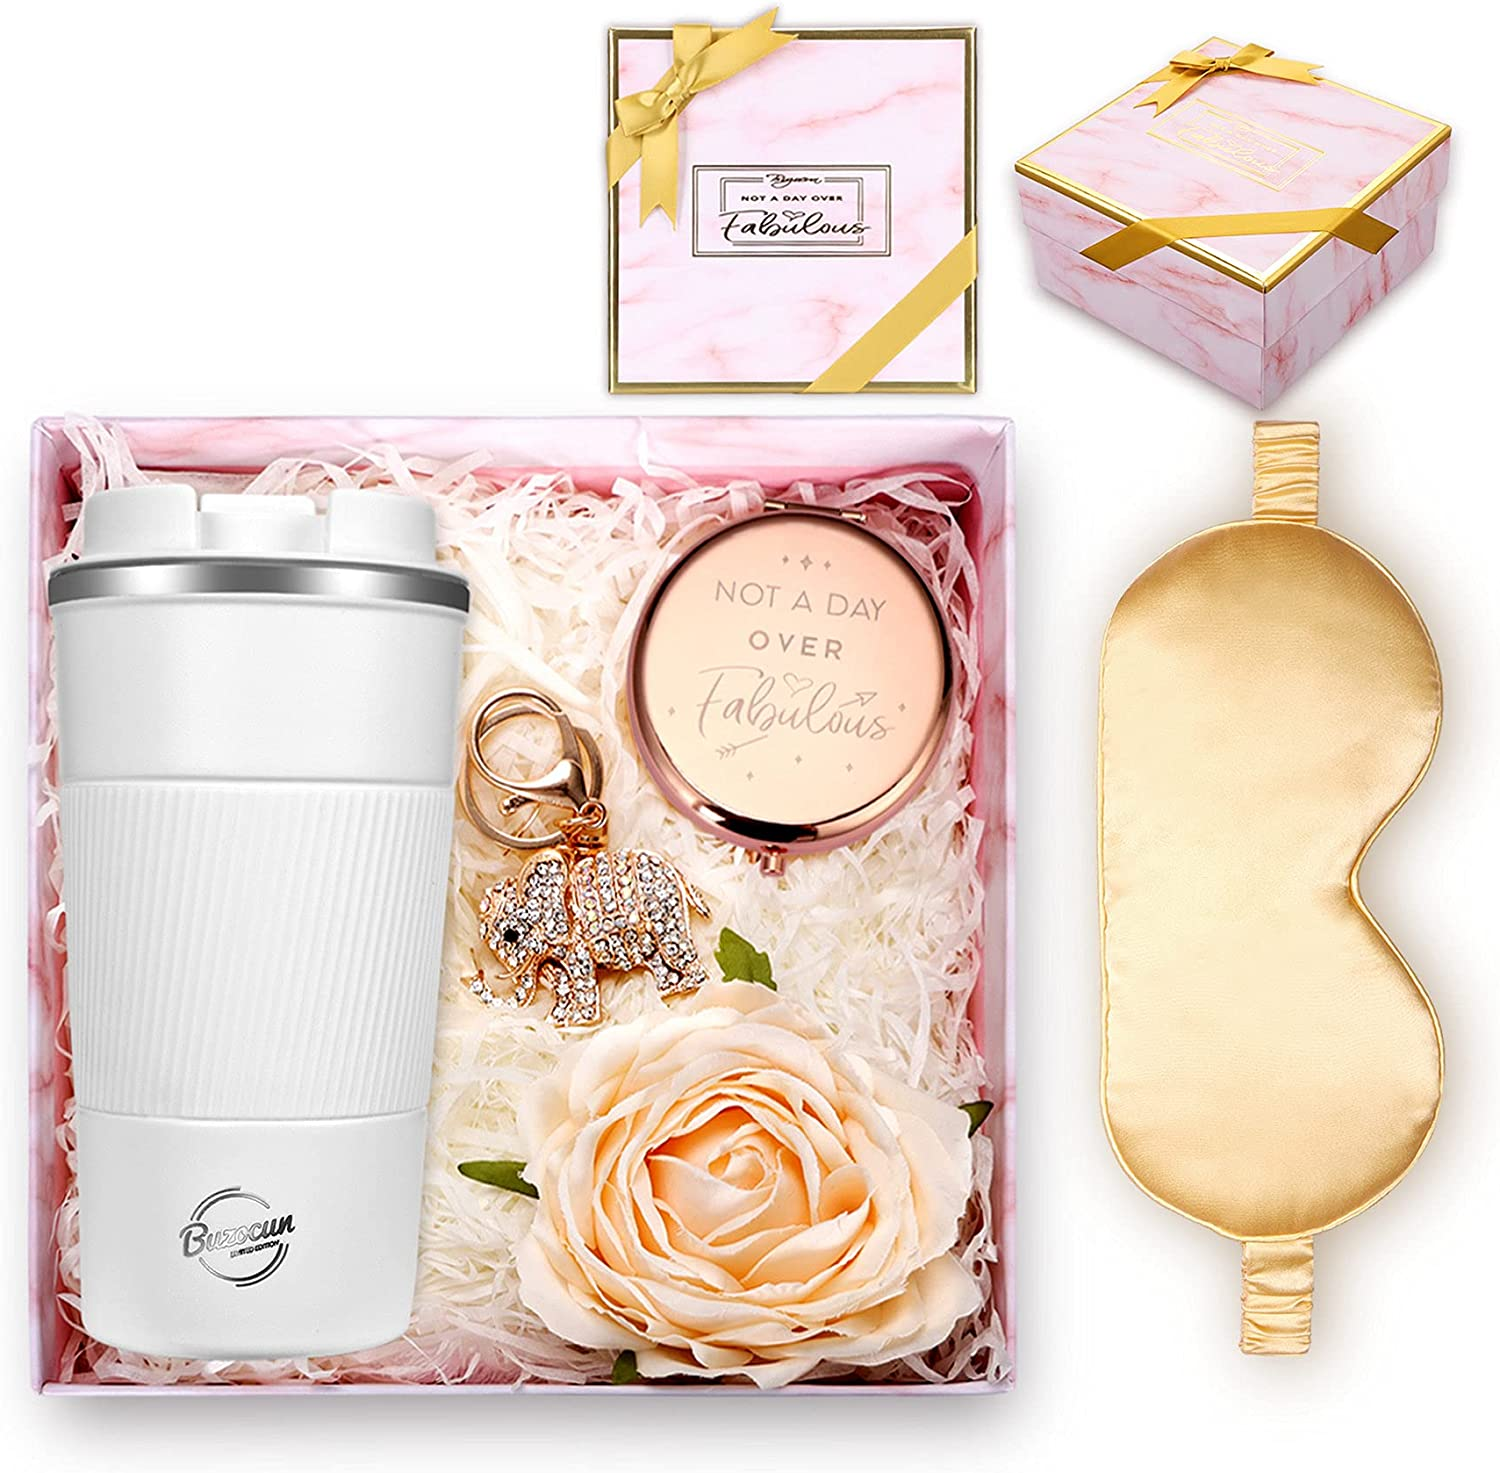 Birthday Gifts Basket for Women - Best Anniversary Box Gifts for